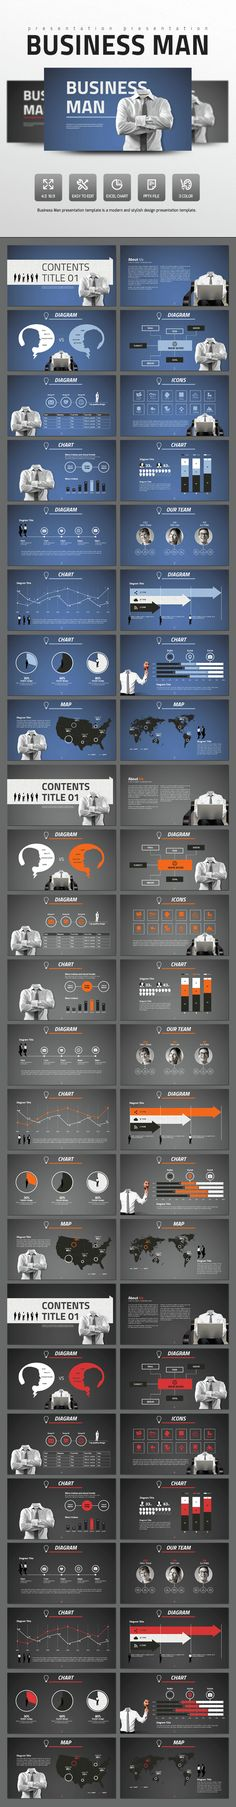 Business Man - PowerPoint Template #slides Download here: http://graphicriver.net/item/business-man/14627140?ref=ksioks